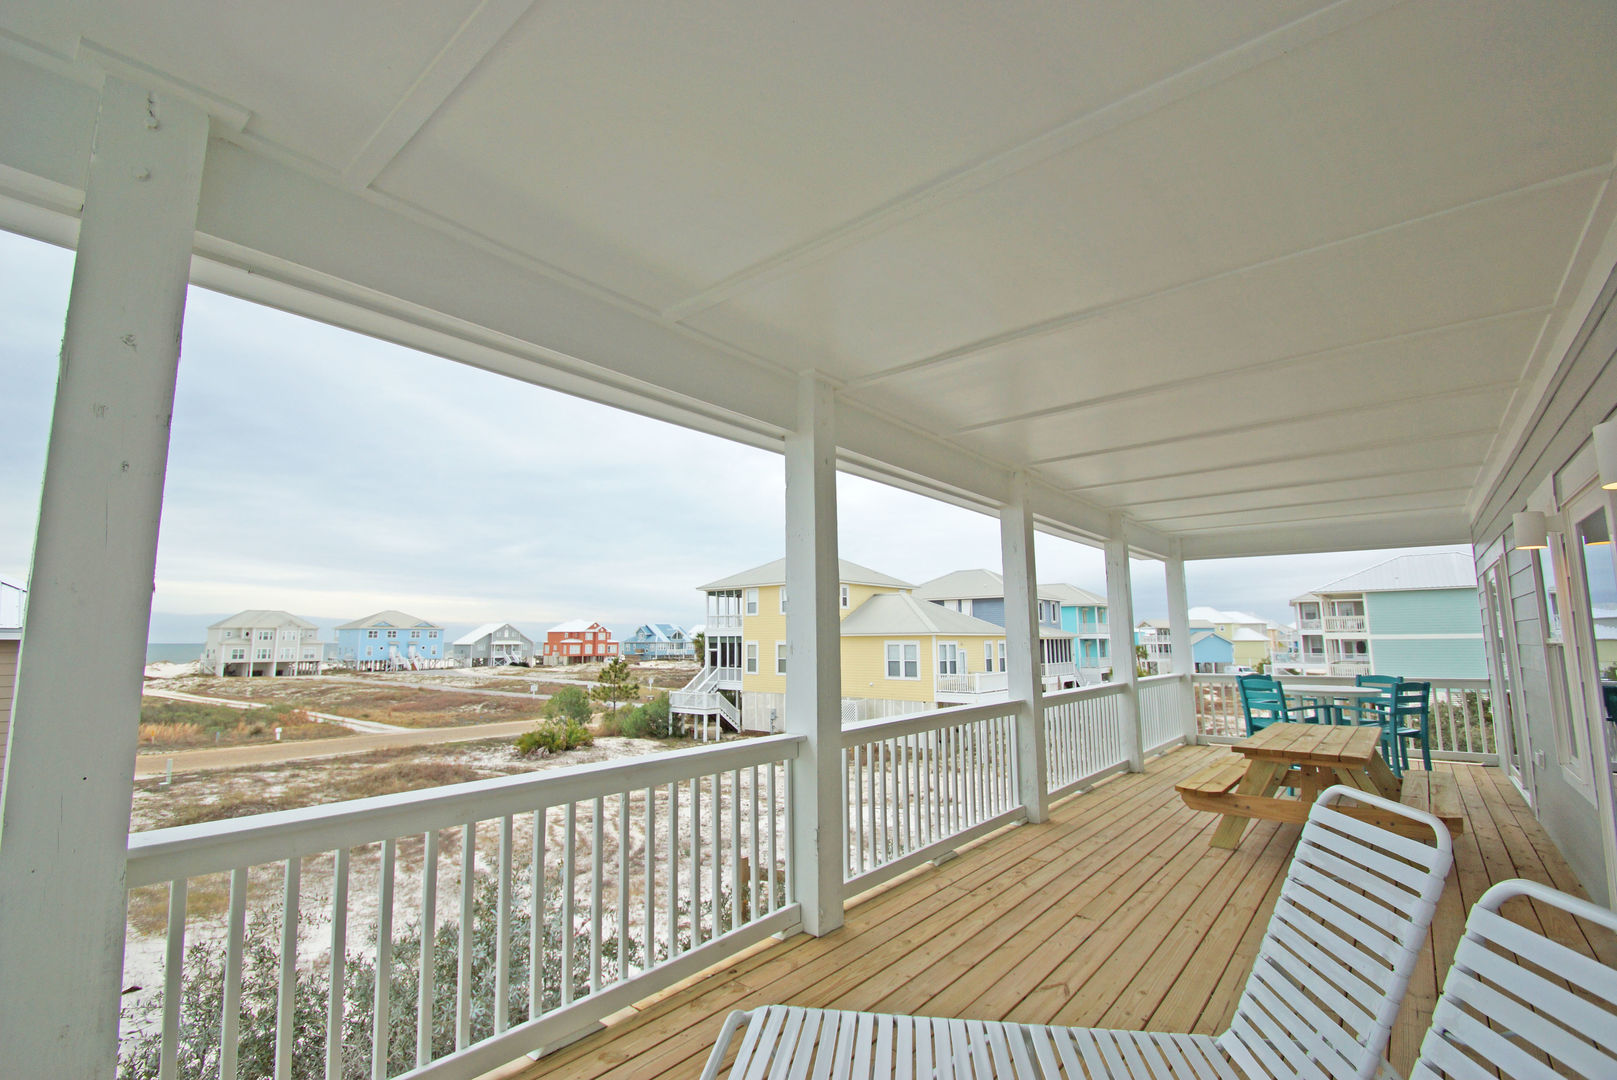 Covered balcony of this Vacation Home For Rent In Gulf Shores, Alabama.